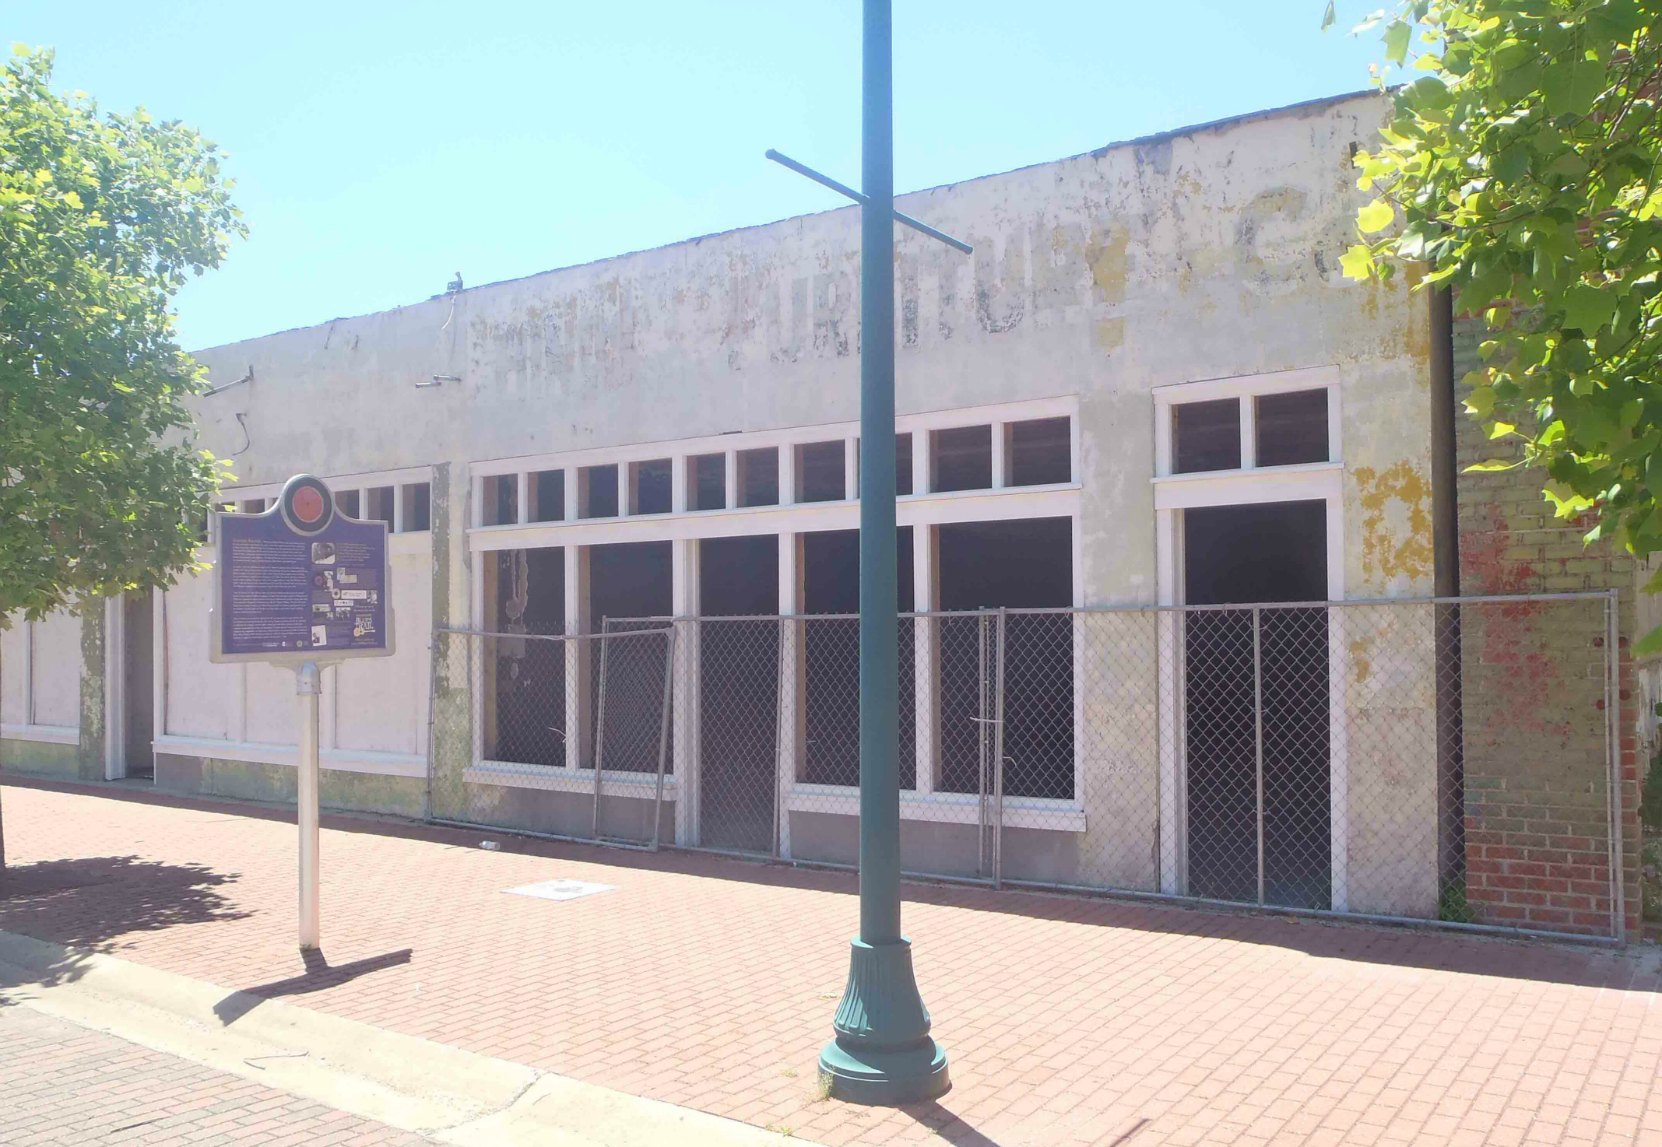 The former location of Trumpet Records, Farish Street, Jackson, Mississippi